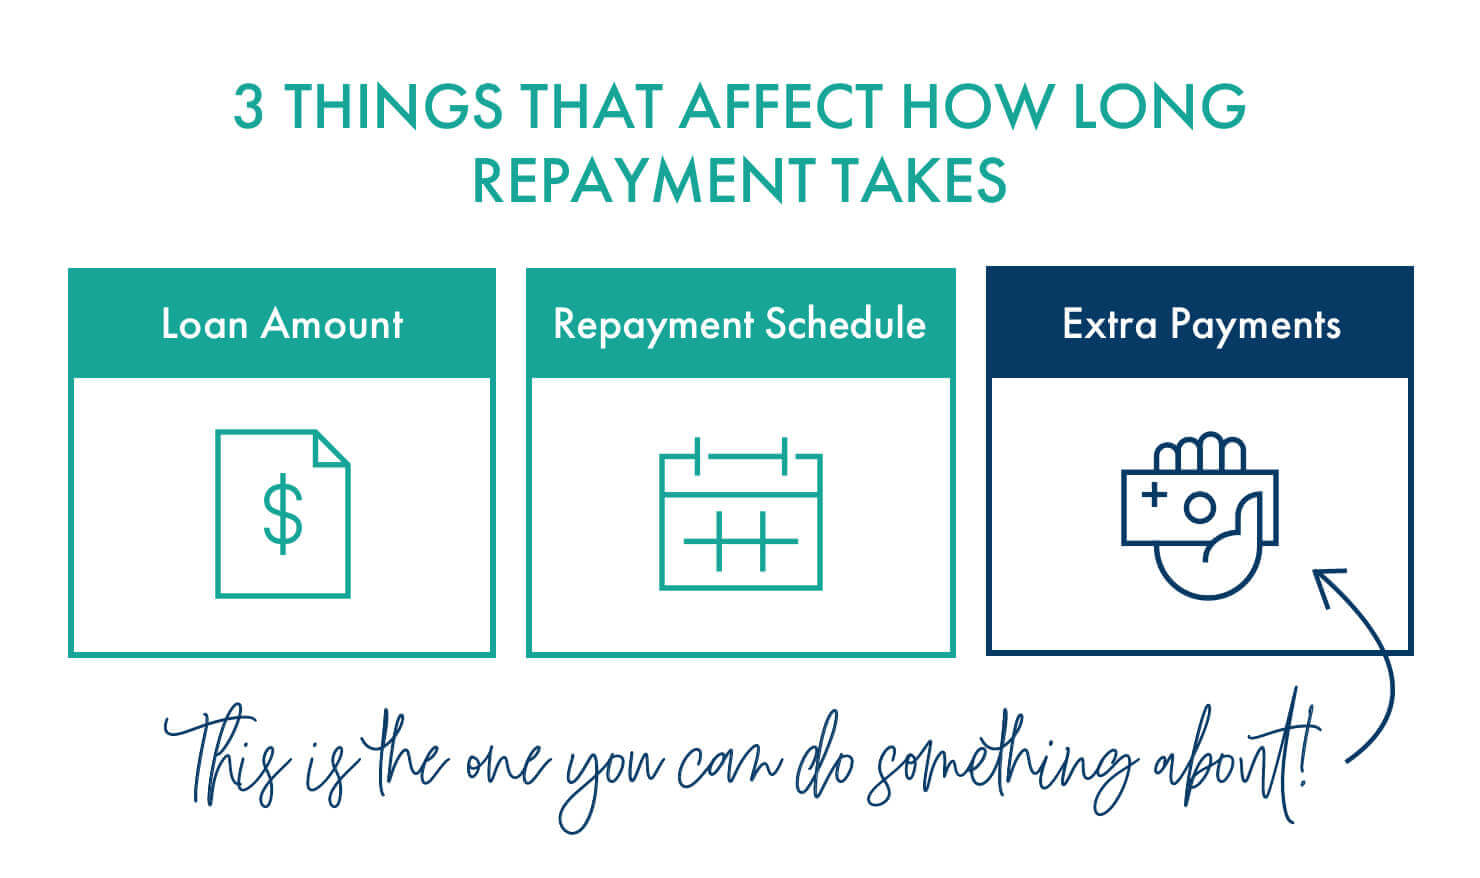 3 things that affect how long repayment takes